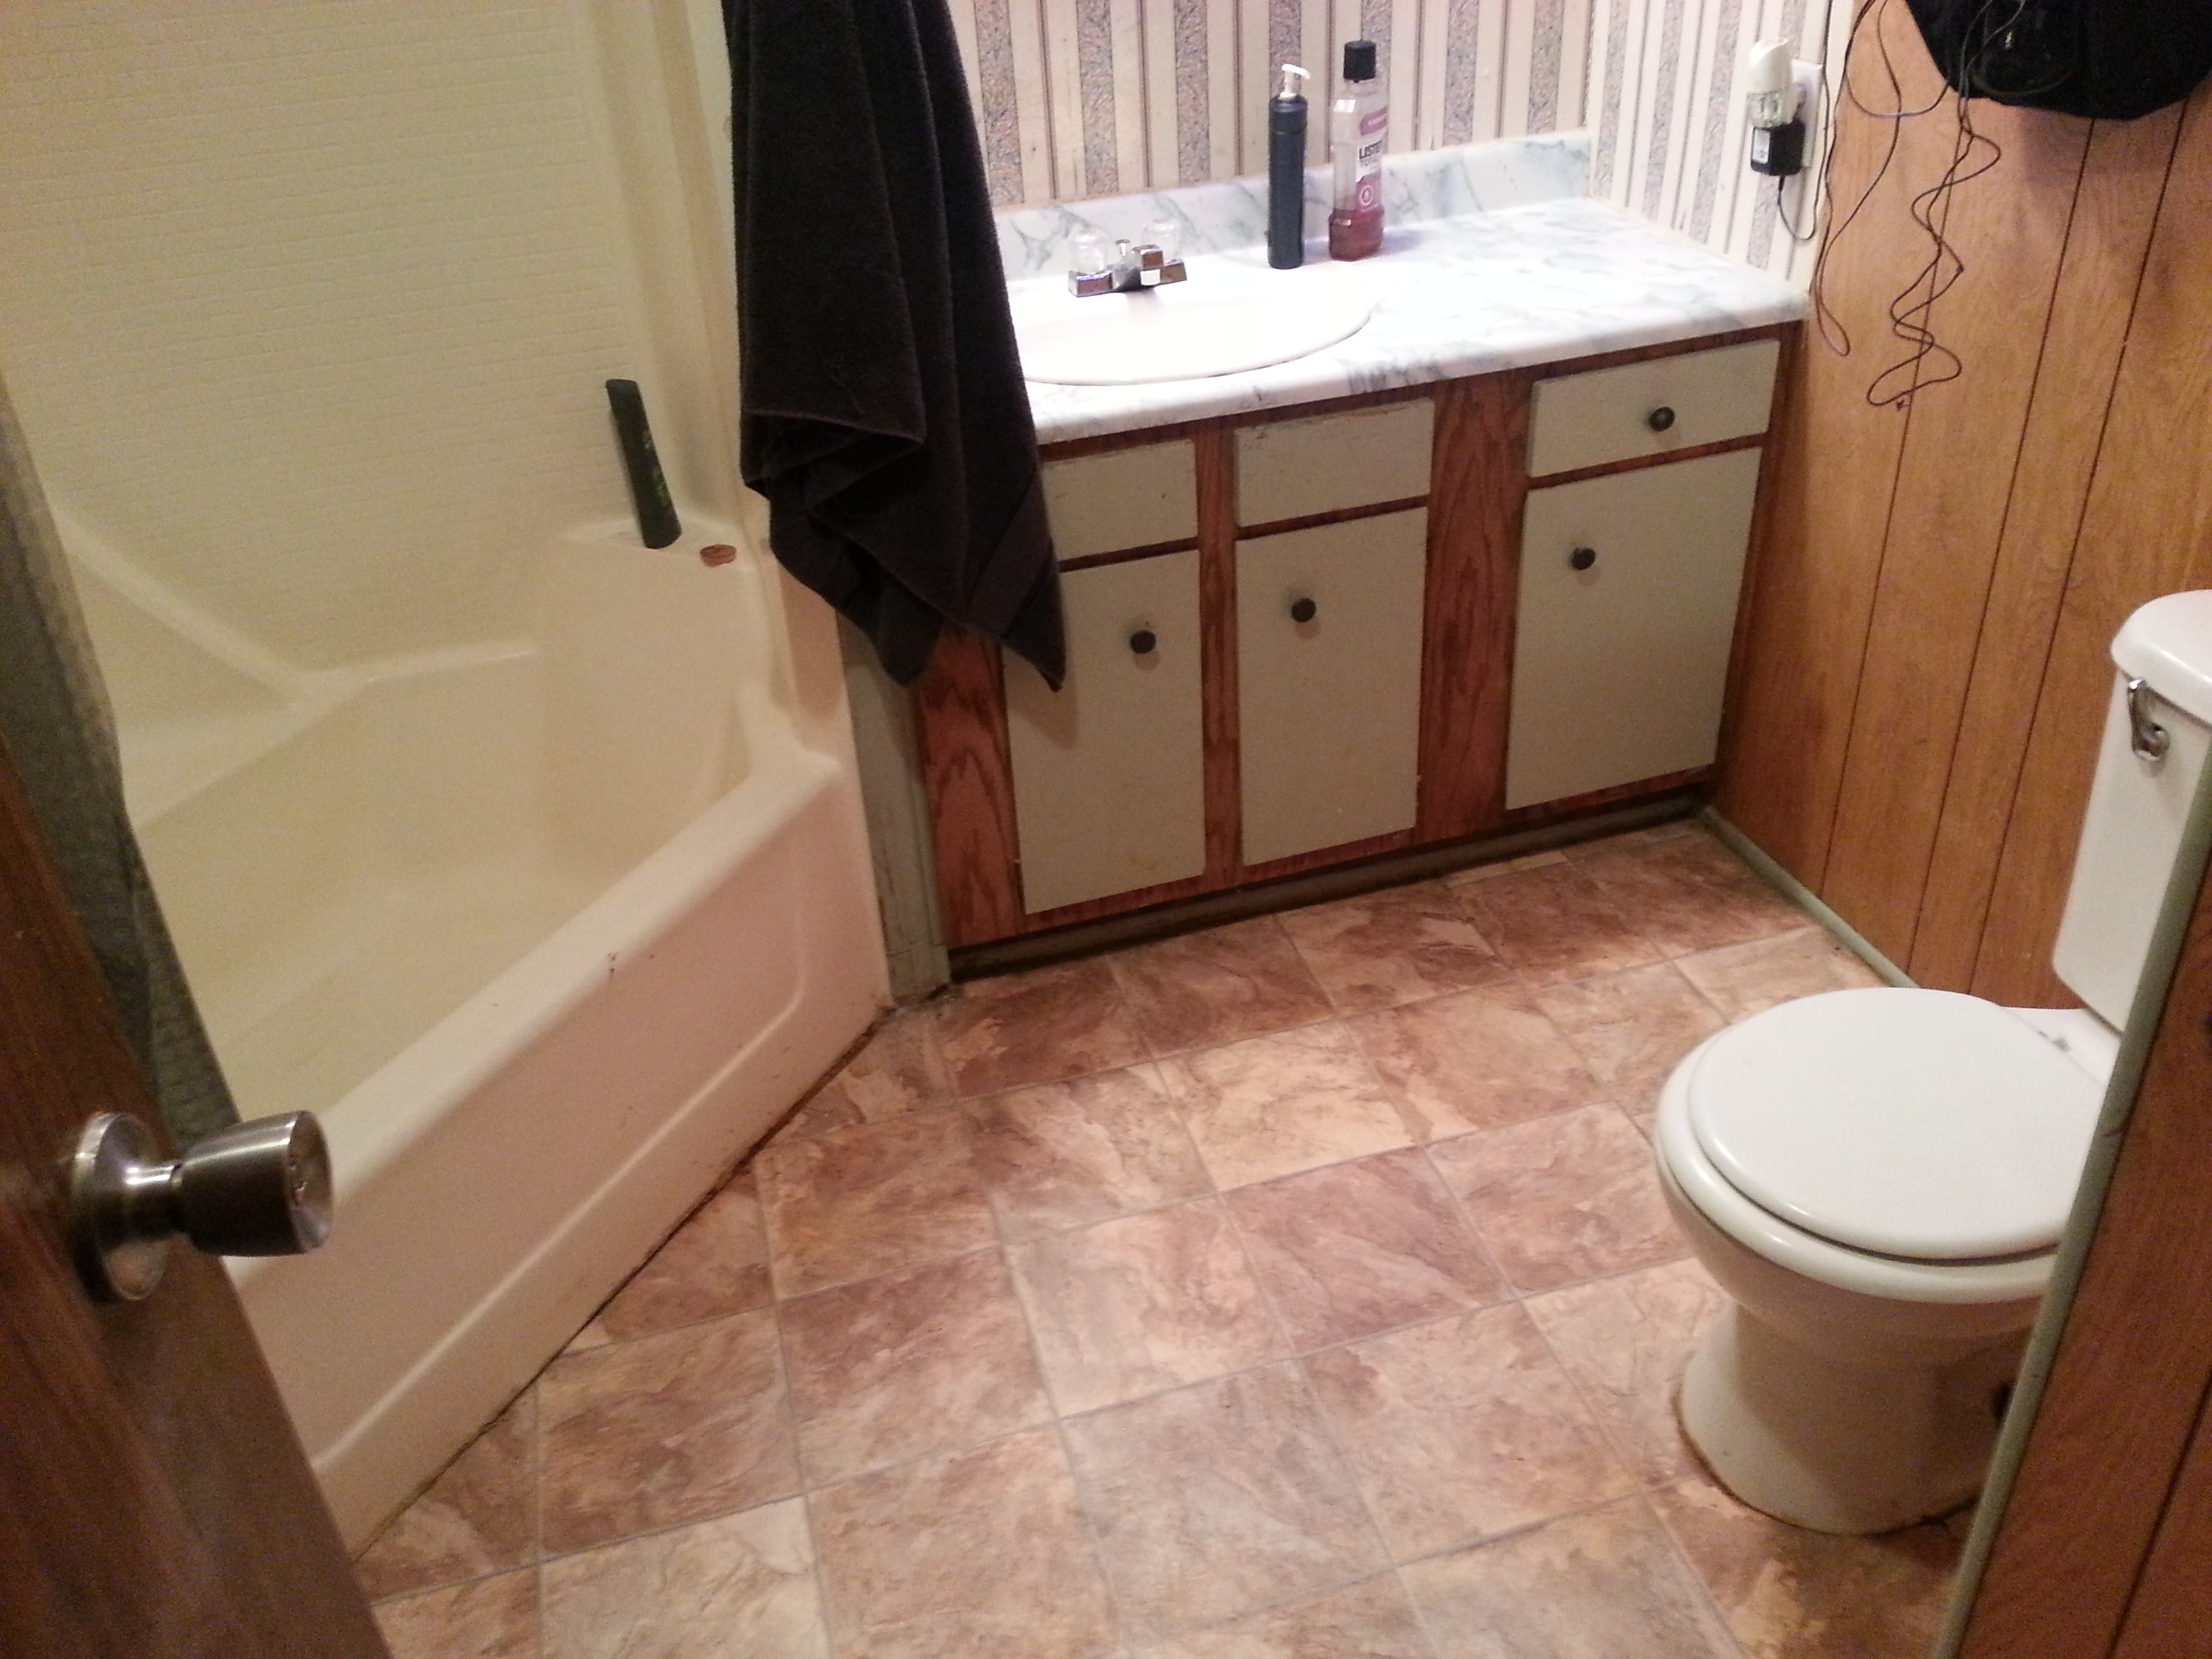 1st North S. 3 Bed Moble Home Bathroom